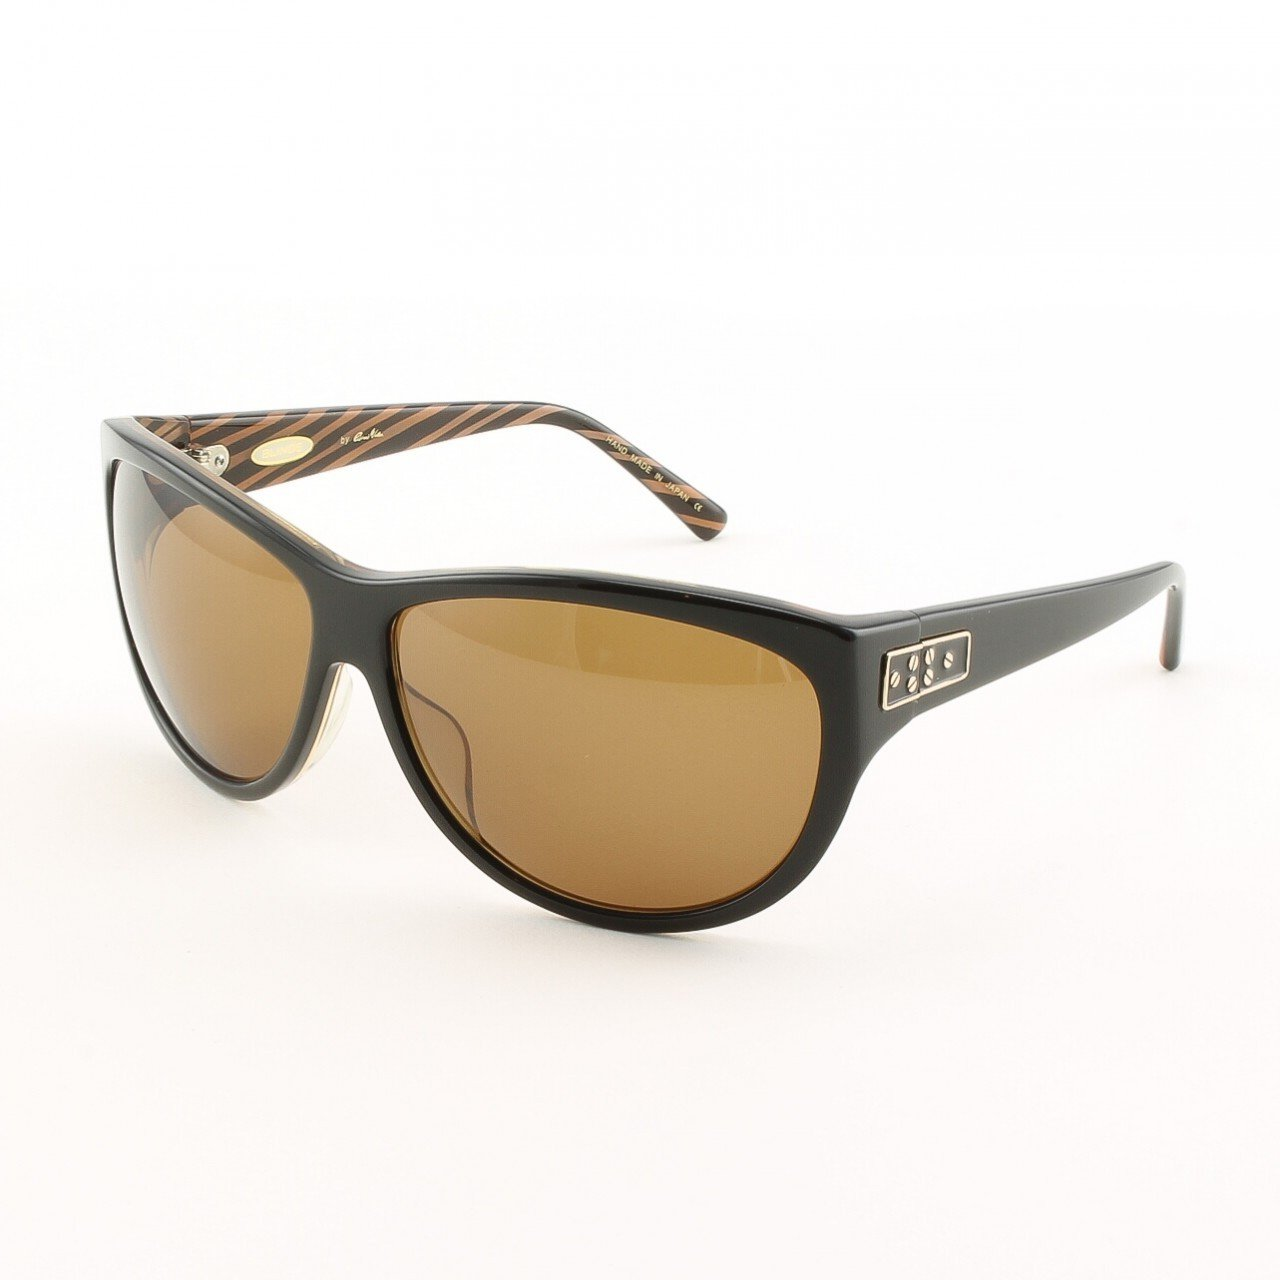 Blinde Lips Like Sugar Women's Sunglasses Col. Brown Zebra with Brown Gradient Lenses